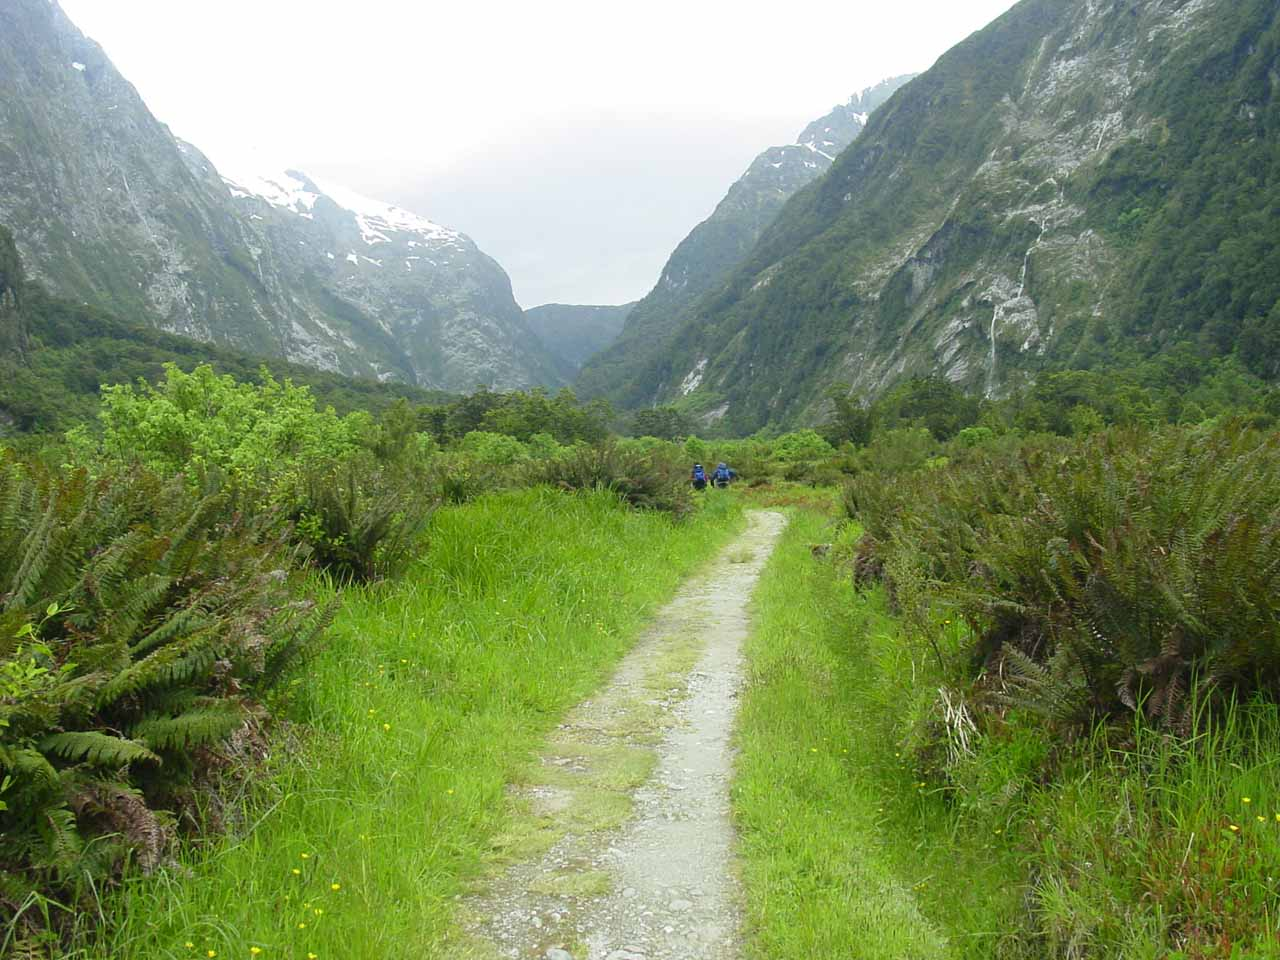 The Milford Track leading to Mackinnon Pass, where we were headed tomorrow